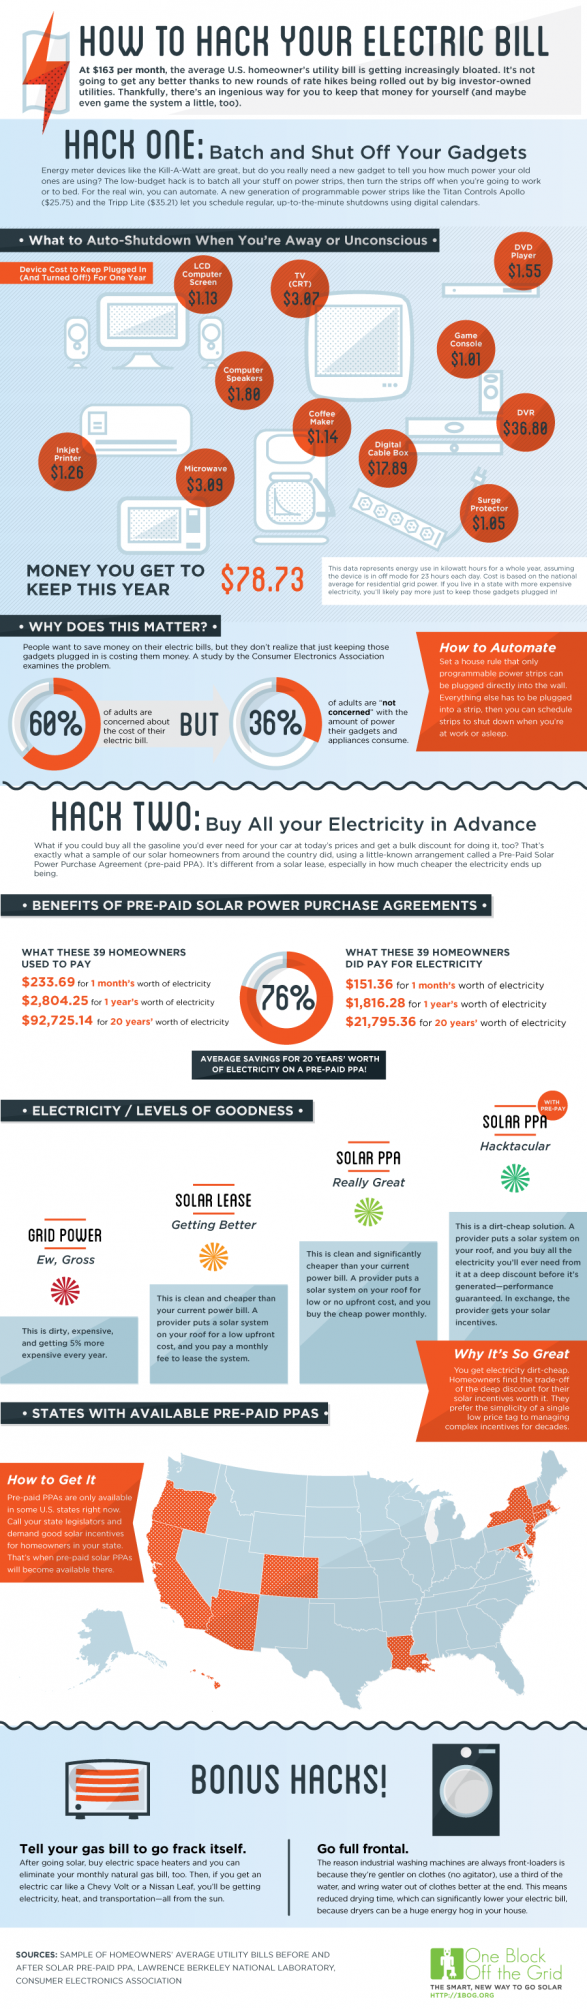 Hack Your Apartment Electricity Bill Infographic Geeks